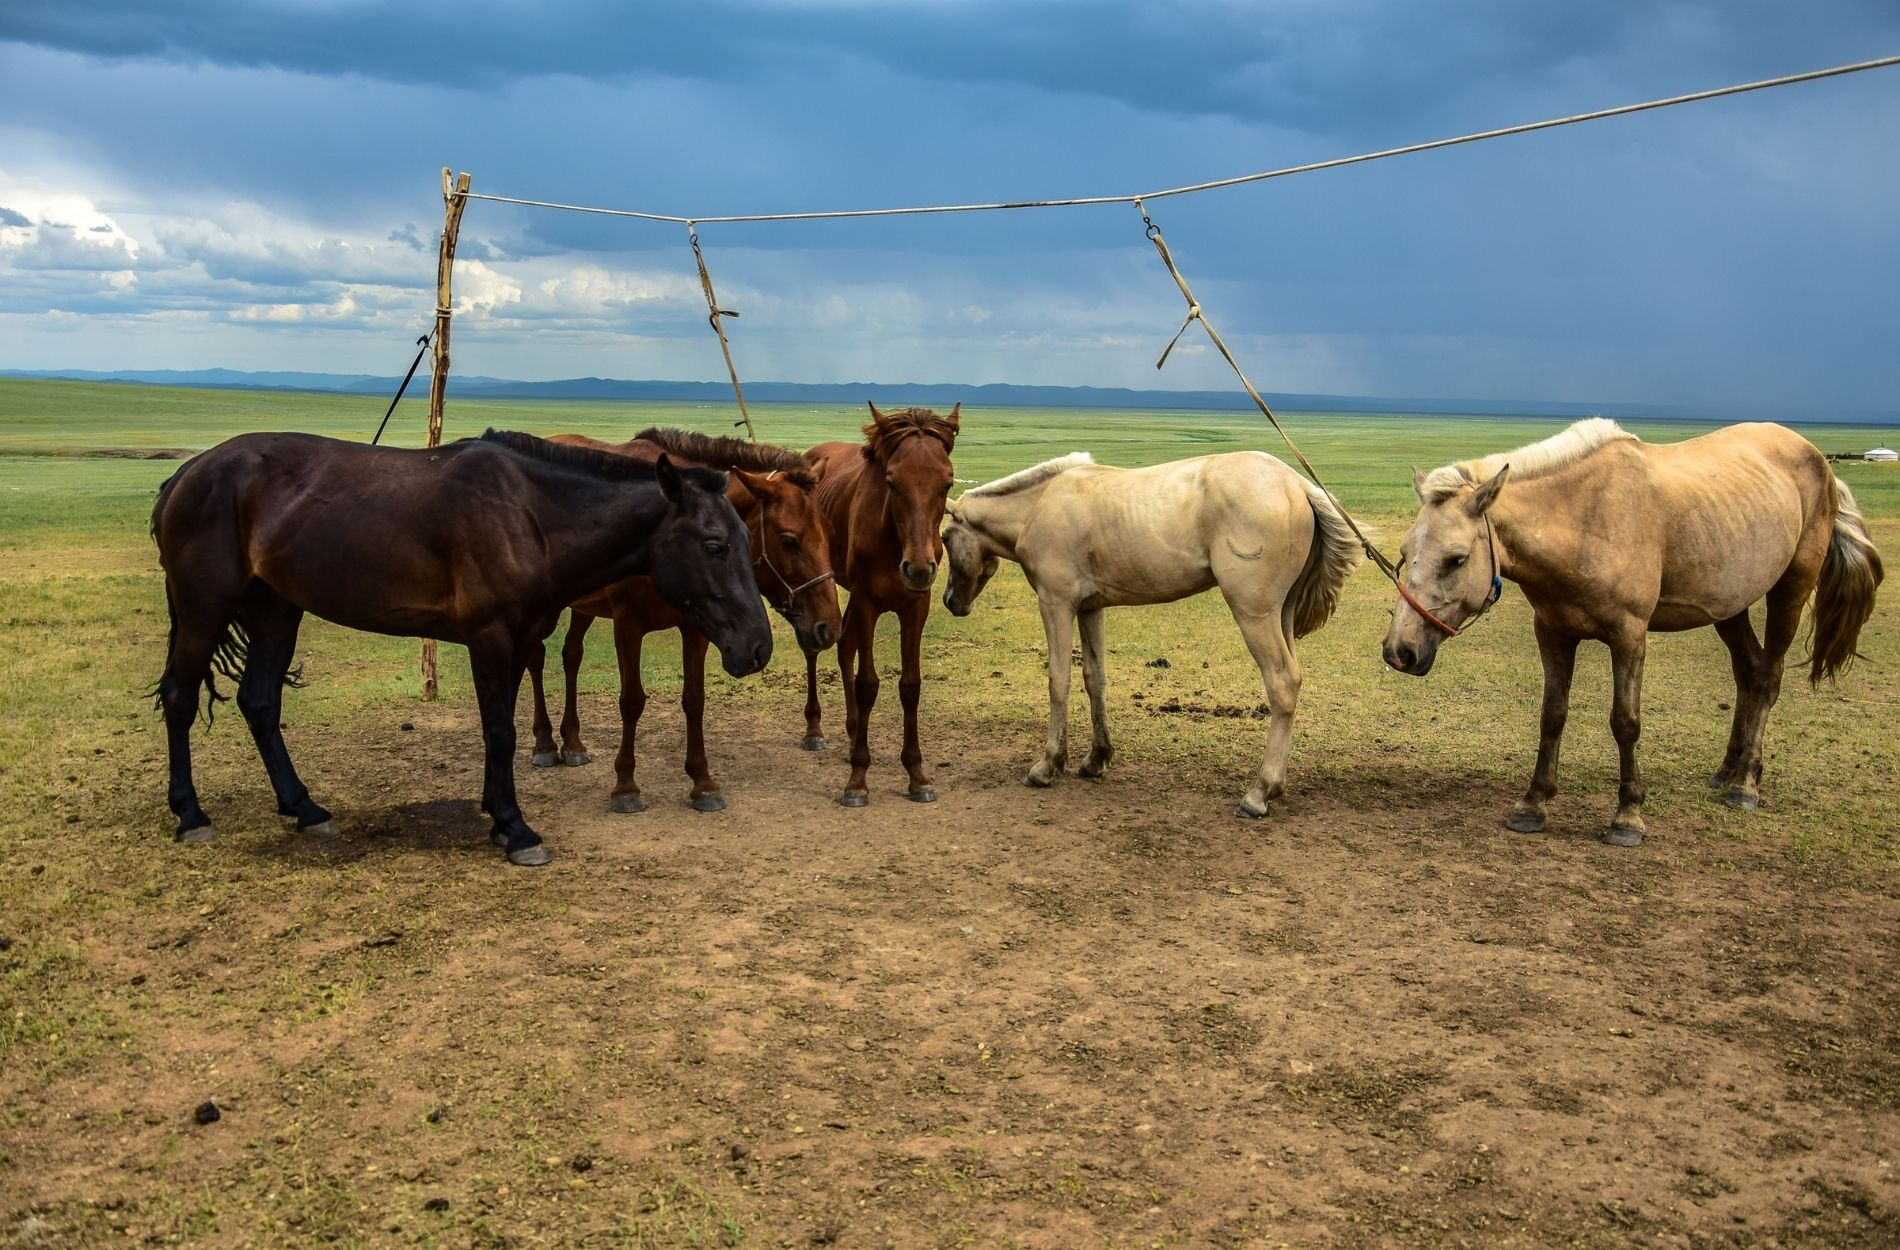 mongolian landscapes photographed by liebre style